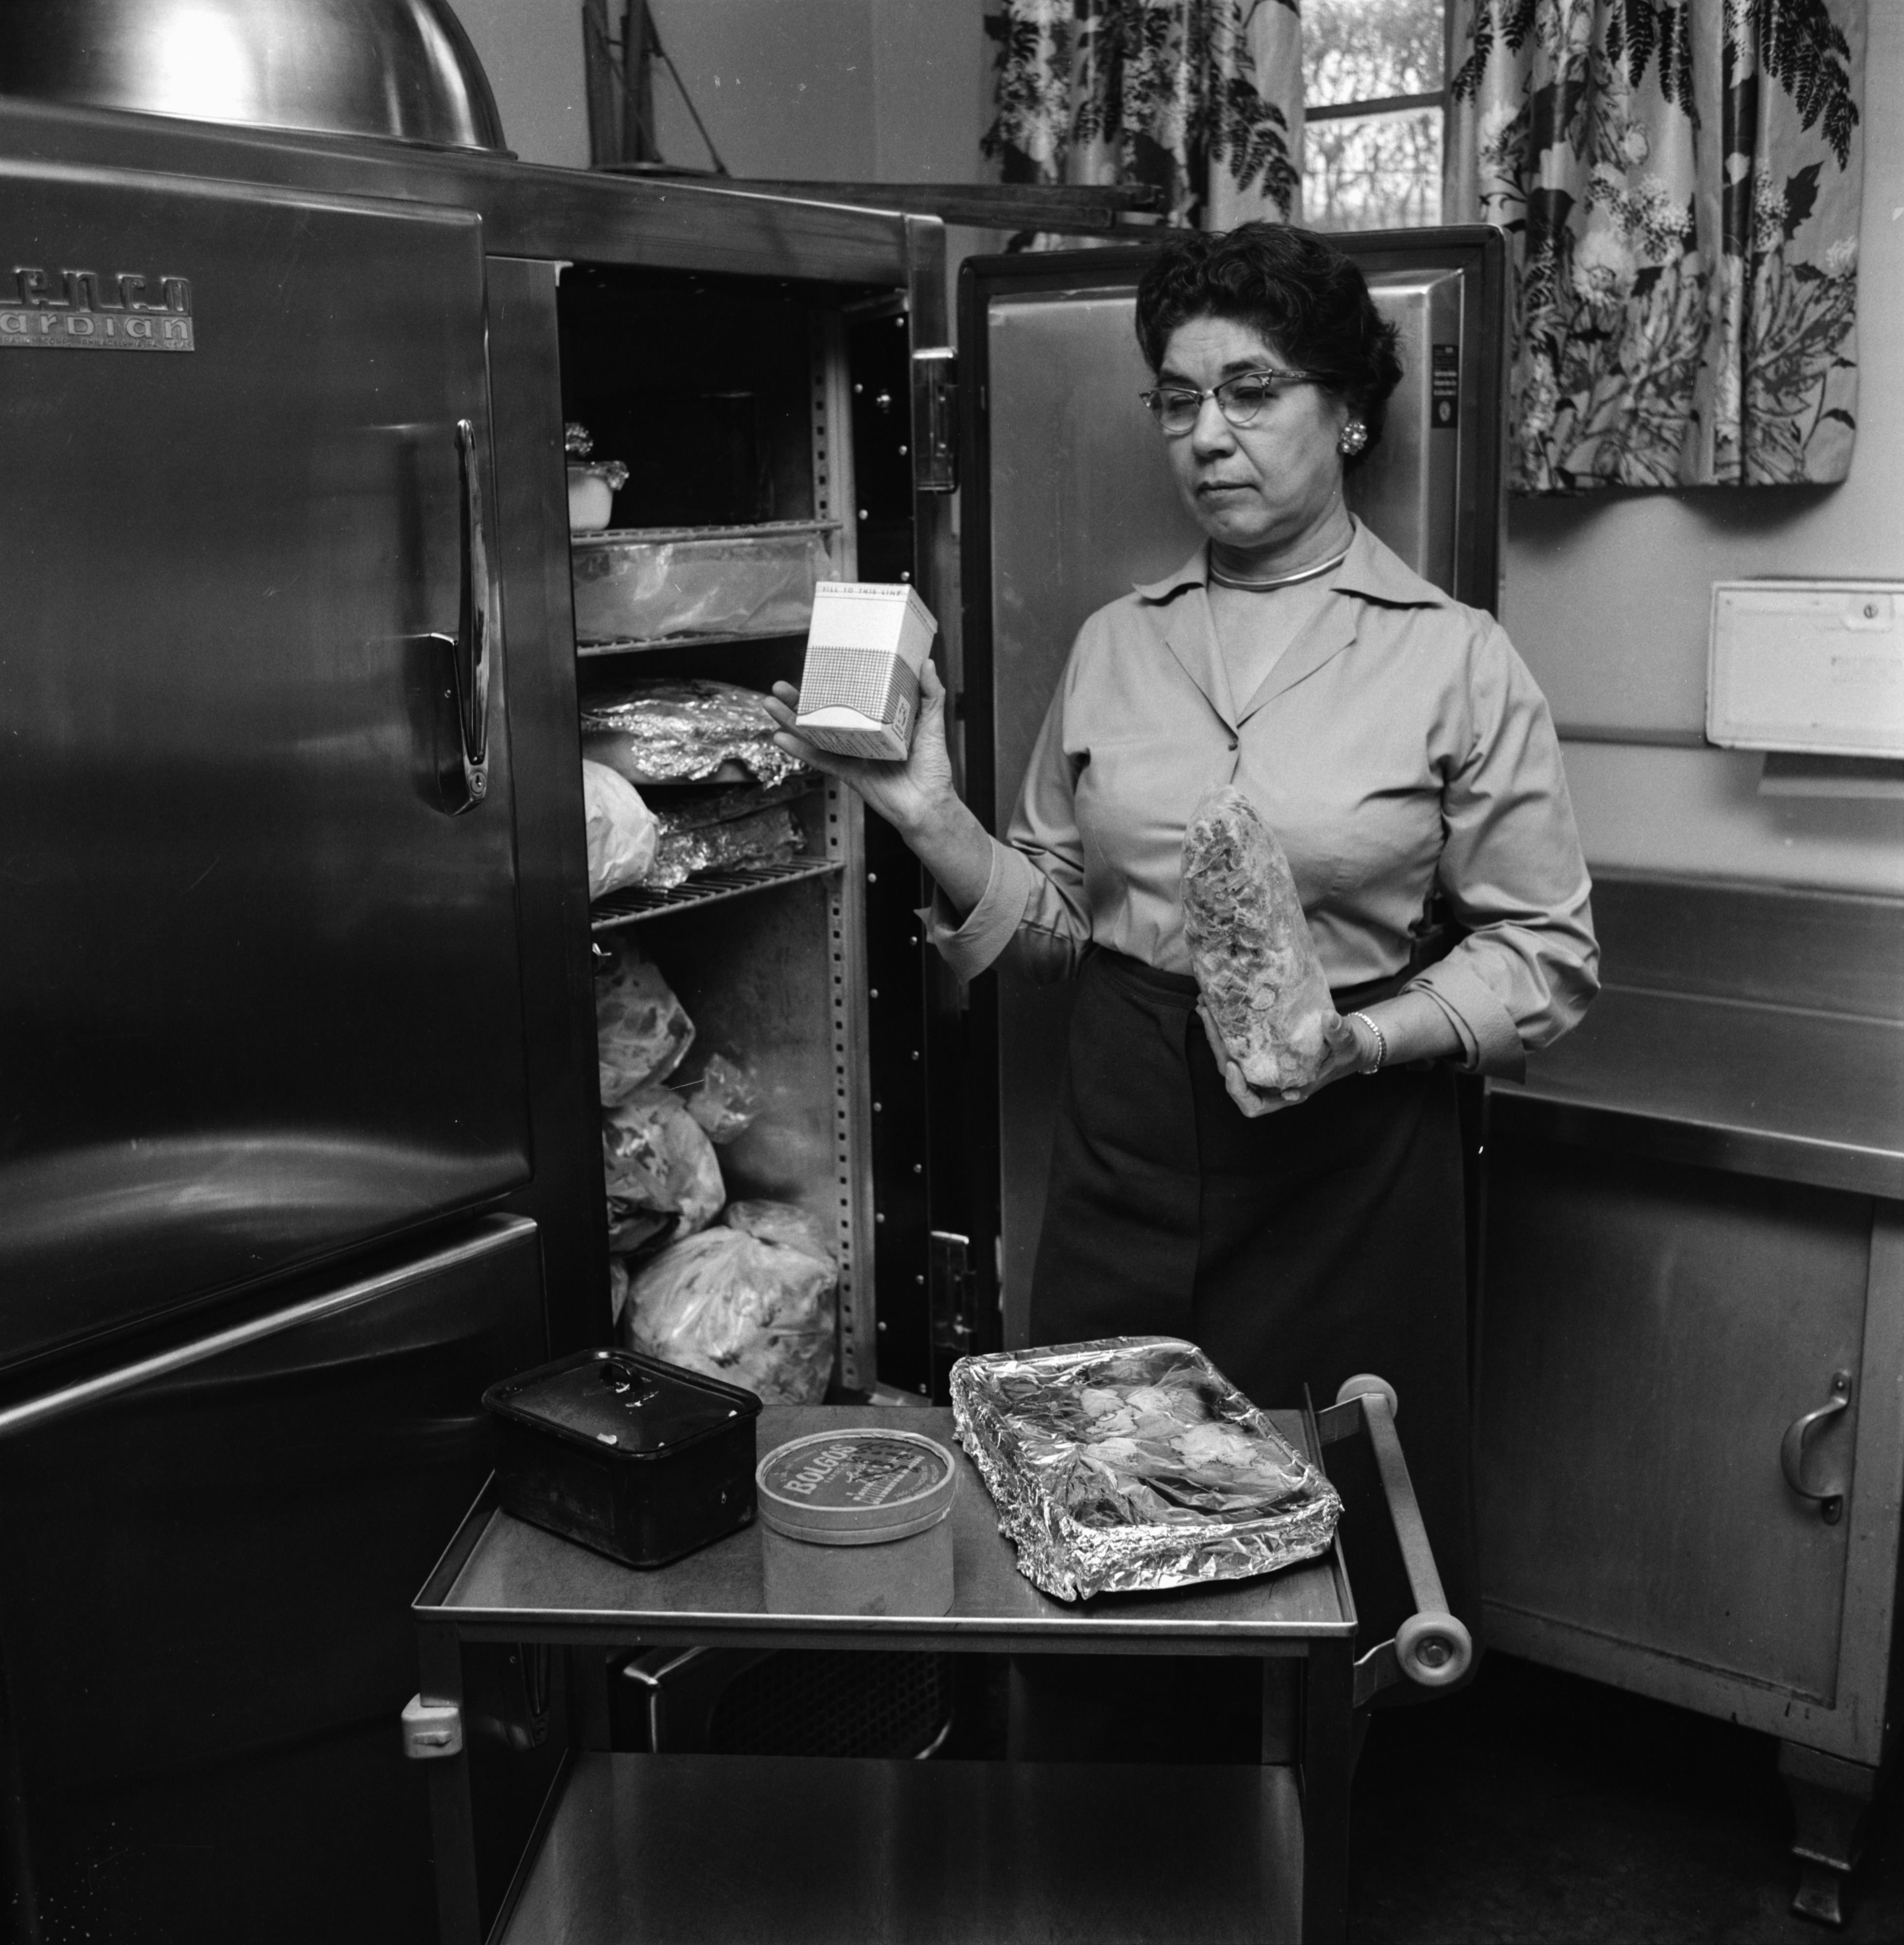 Mrs. Harry B. White, Director of Food Service at the First Methodist Church, March 1962 image